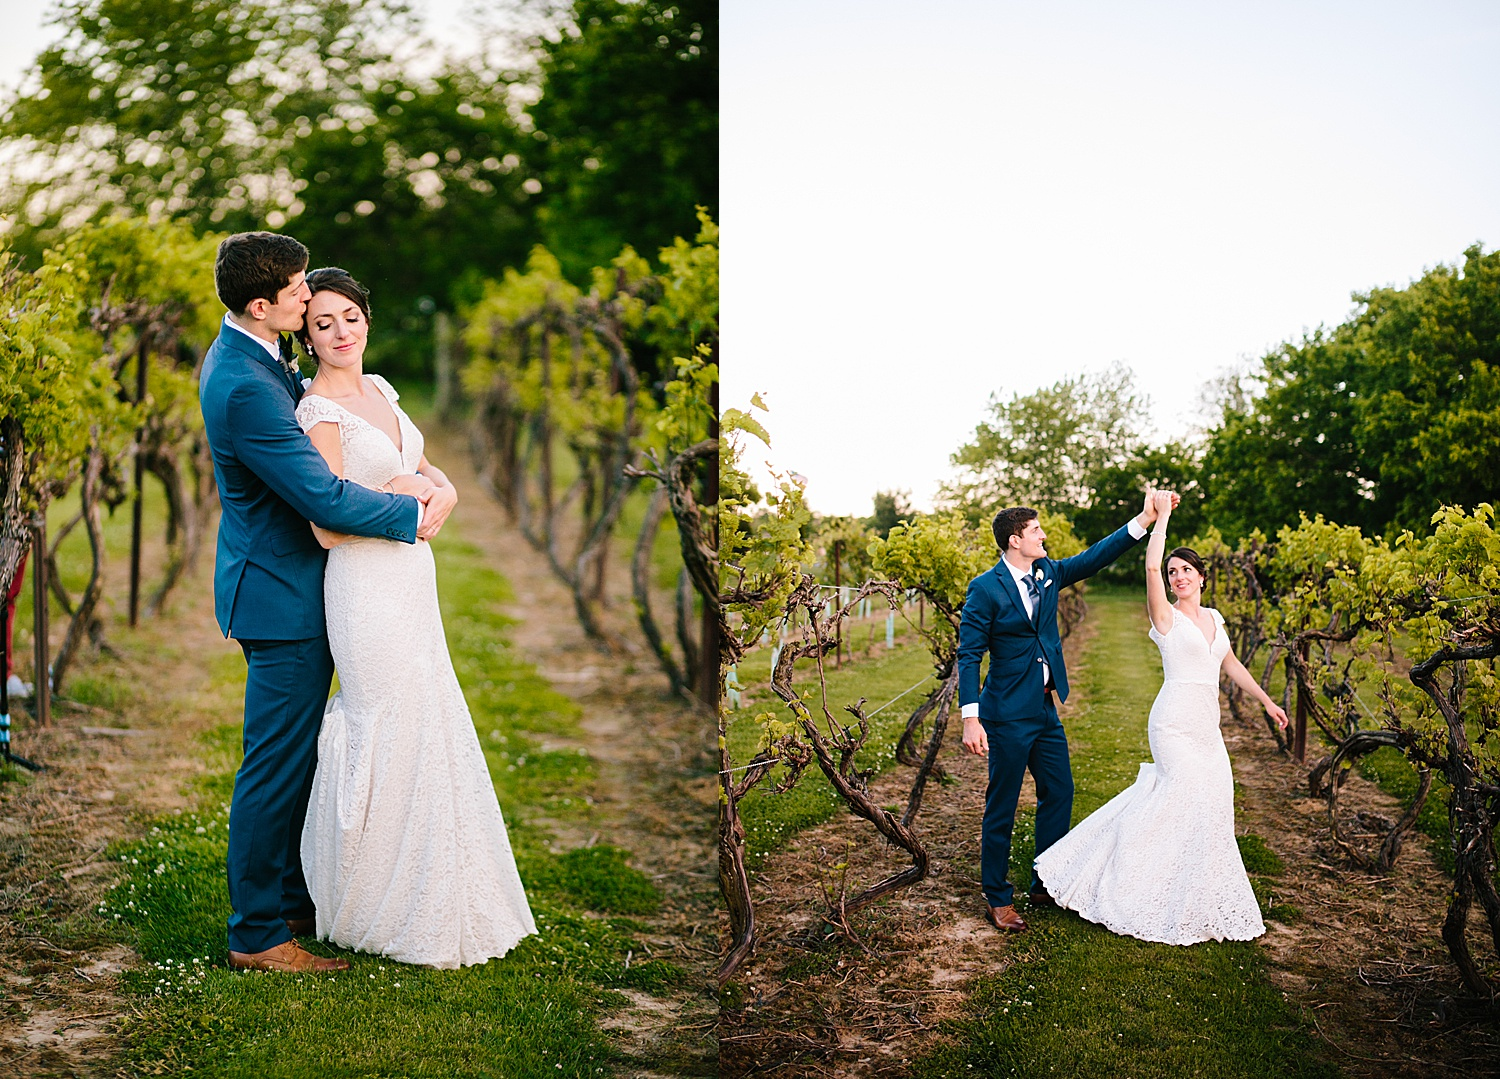 emilyaustin_rosebank_winery_newhope_farm_wedding_image113.jpg